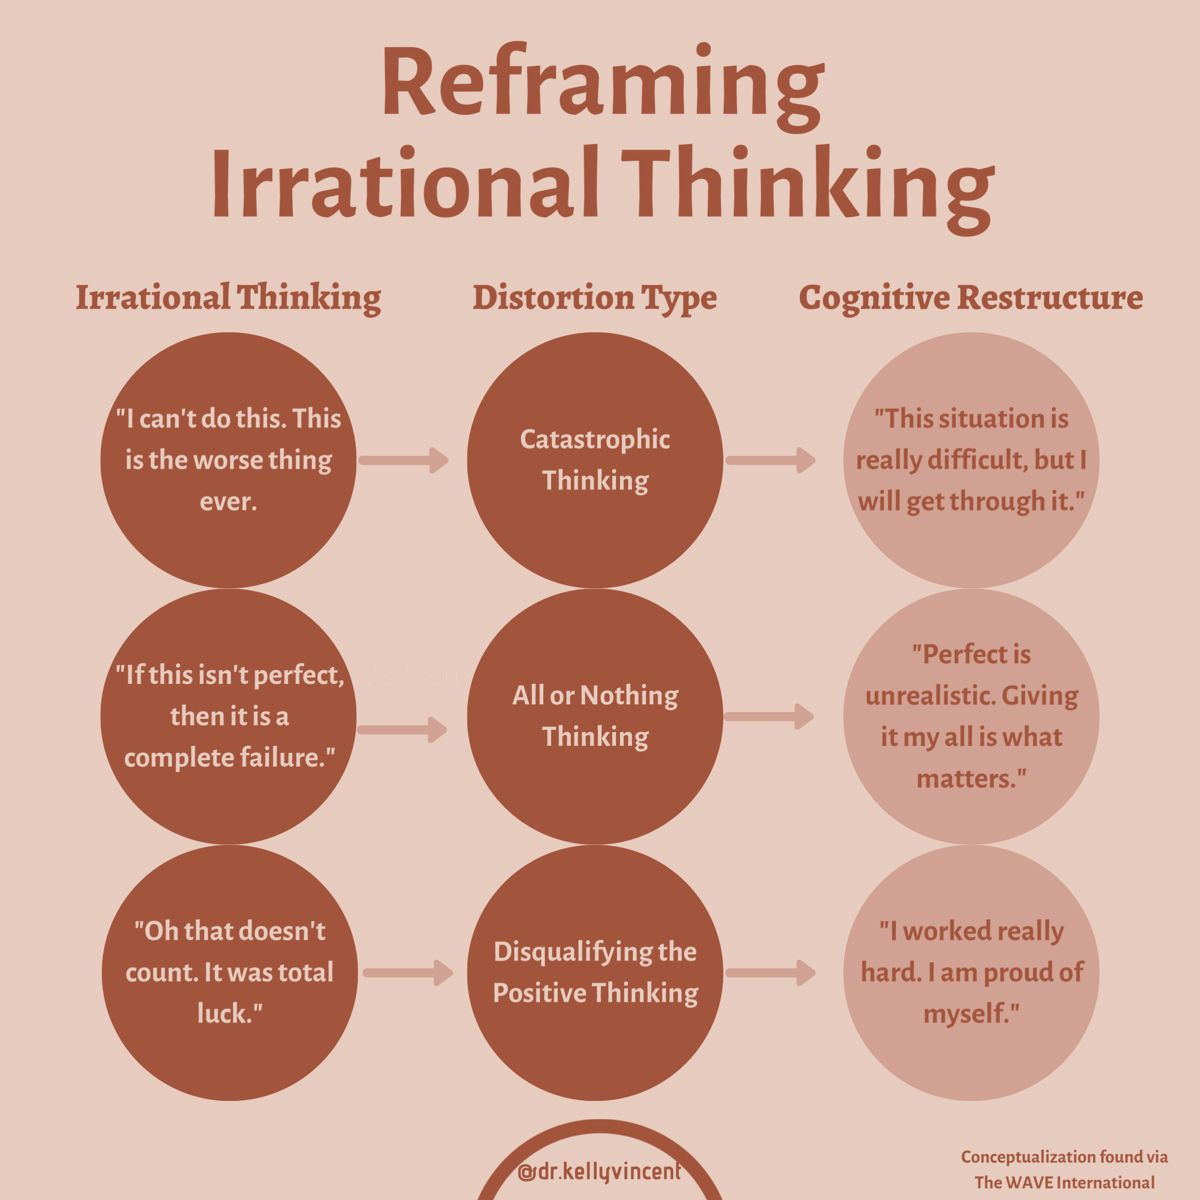 Reframing Irrational Thinking via CBT